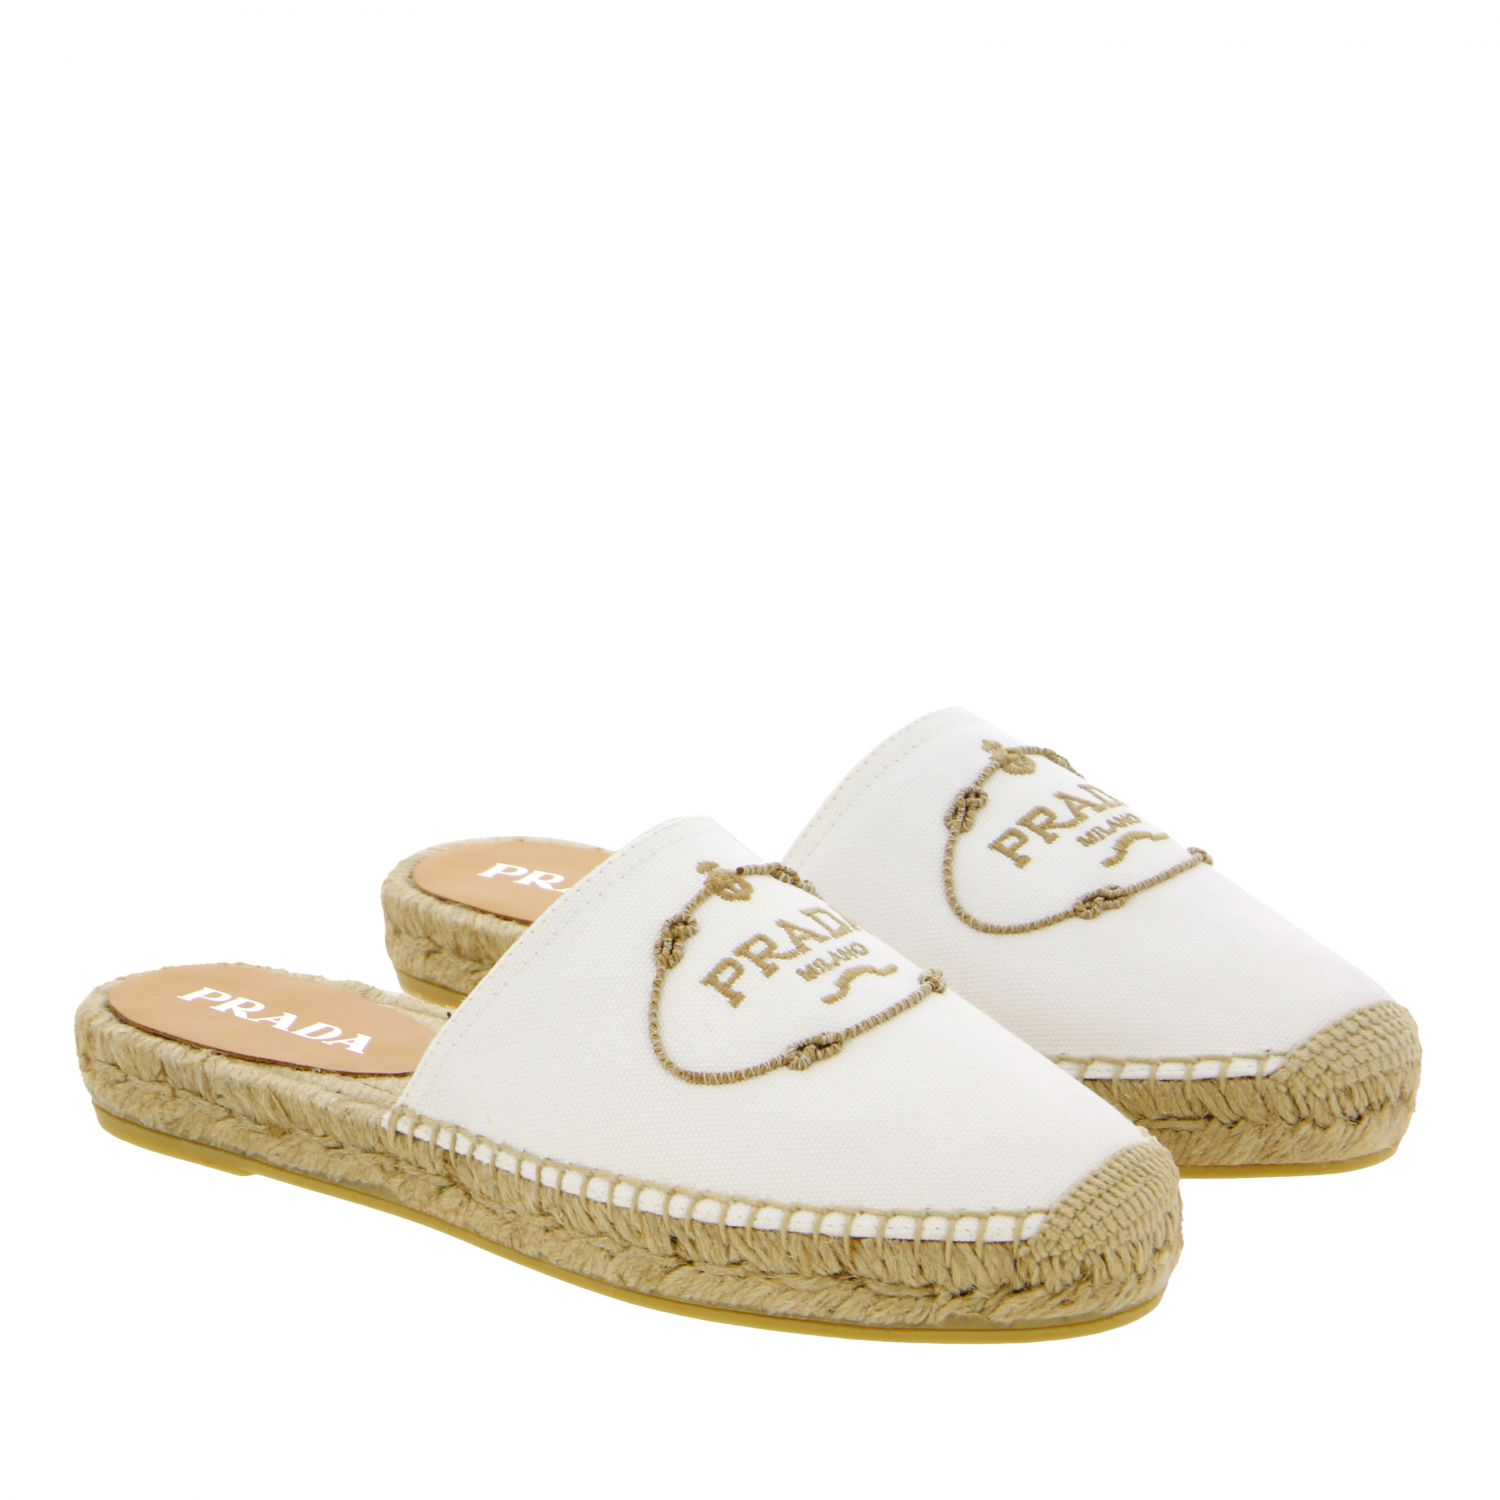 Espadrilles Prada: Shoes women Prada white 2